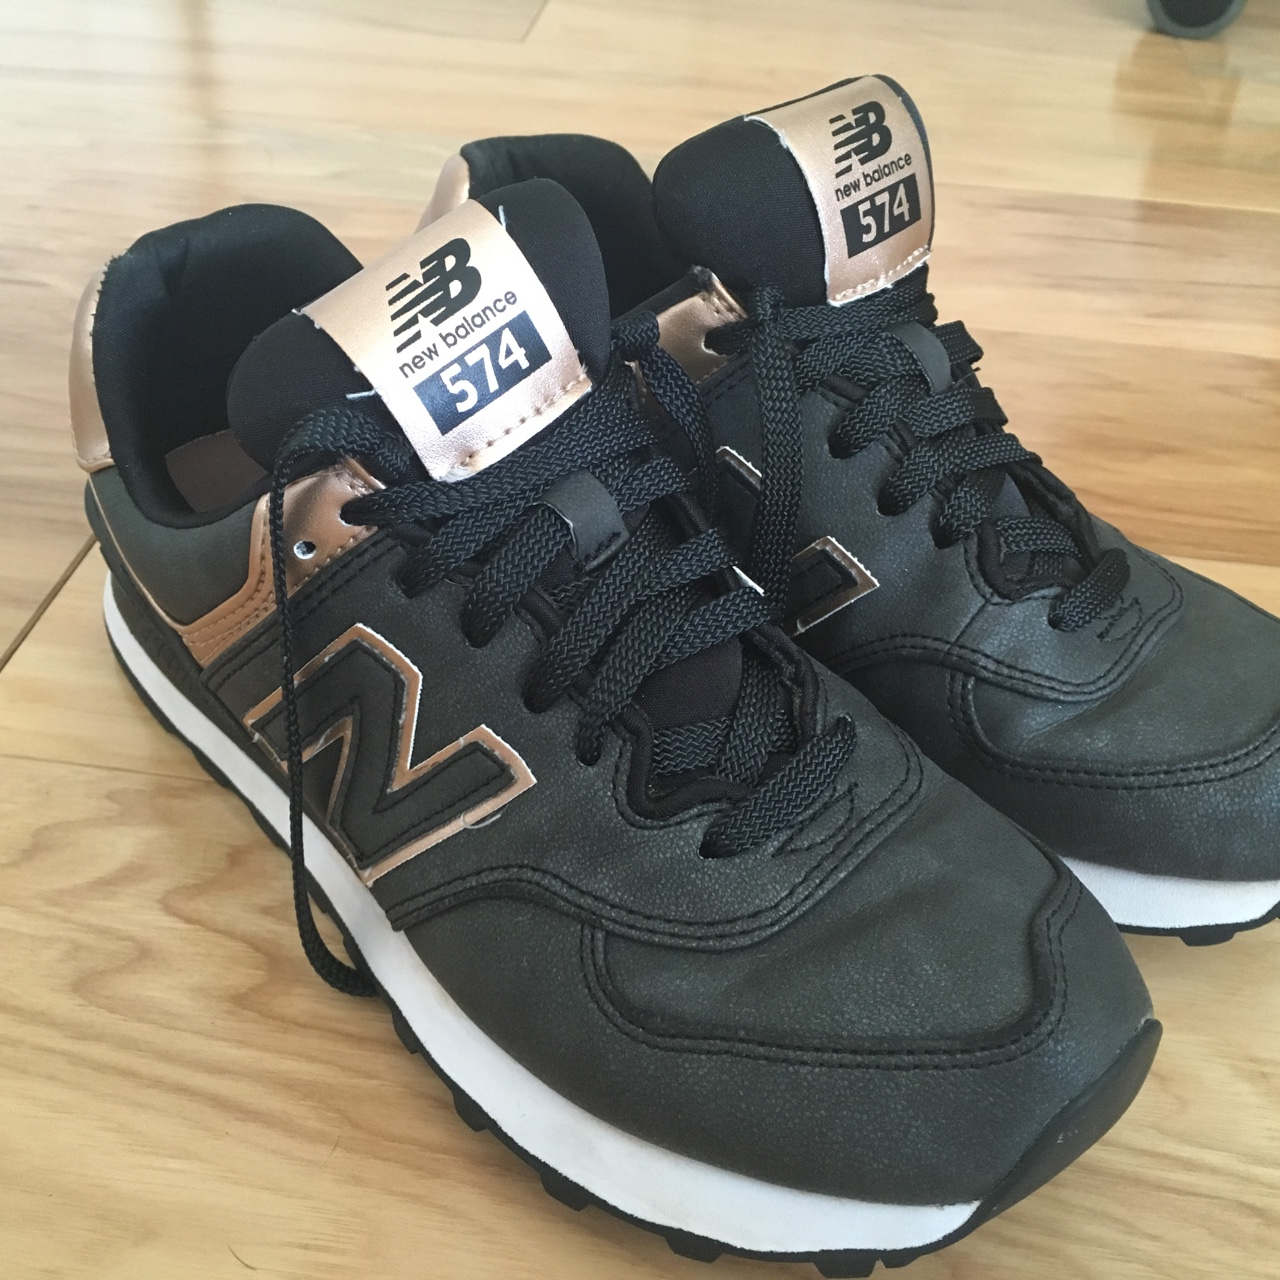 en soldes 3e56d 3763e New Balance 474 in dark gray and rose gold. Women's ...